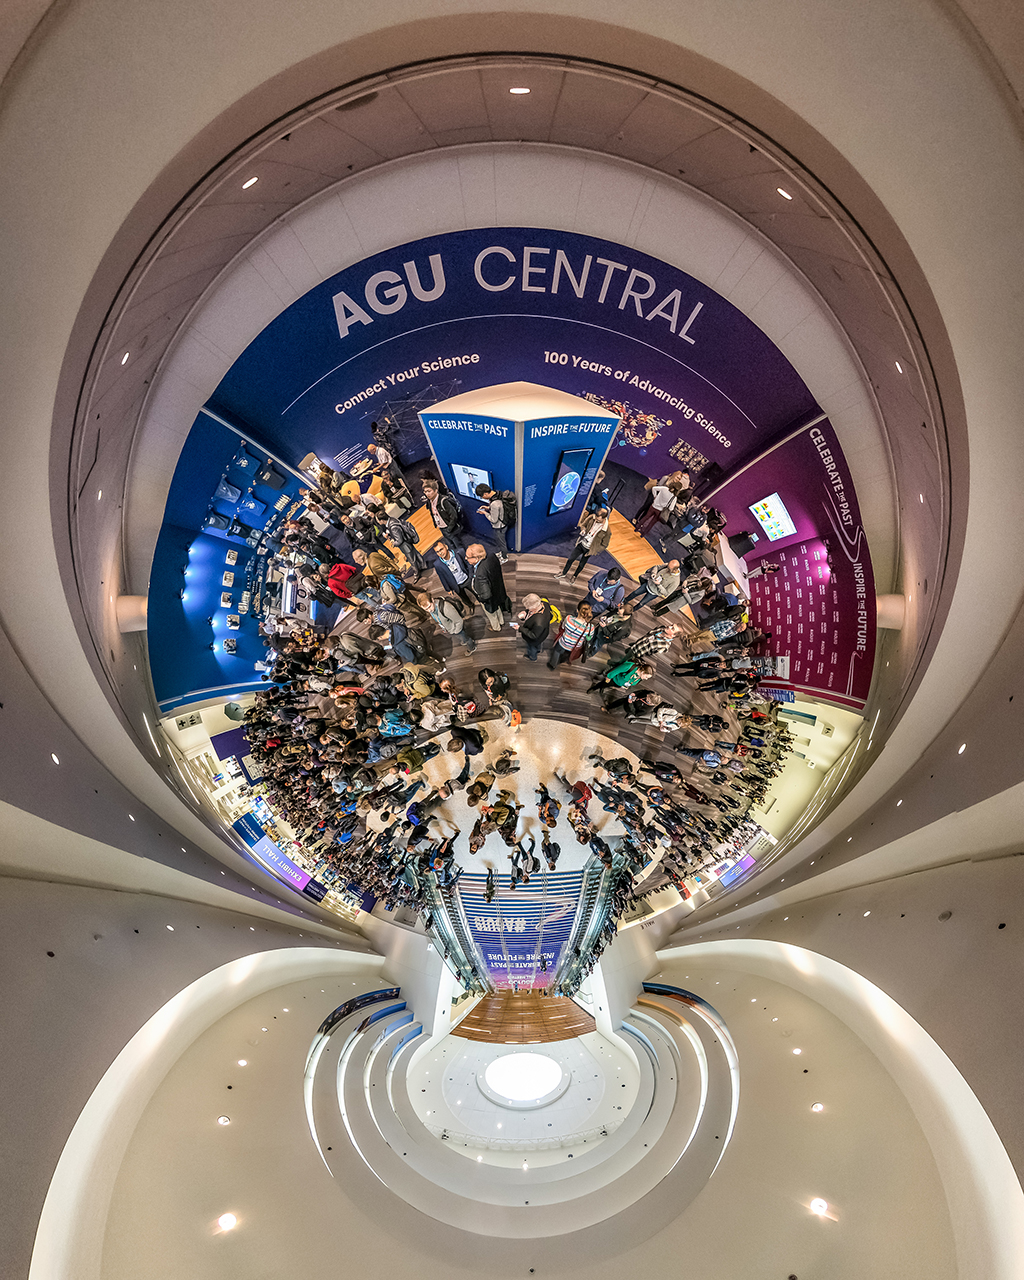 AGU Panoramic Ceiling Shot